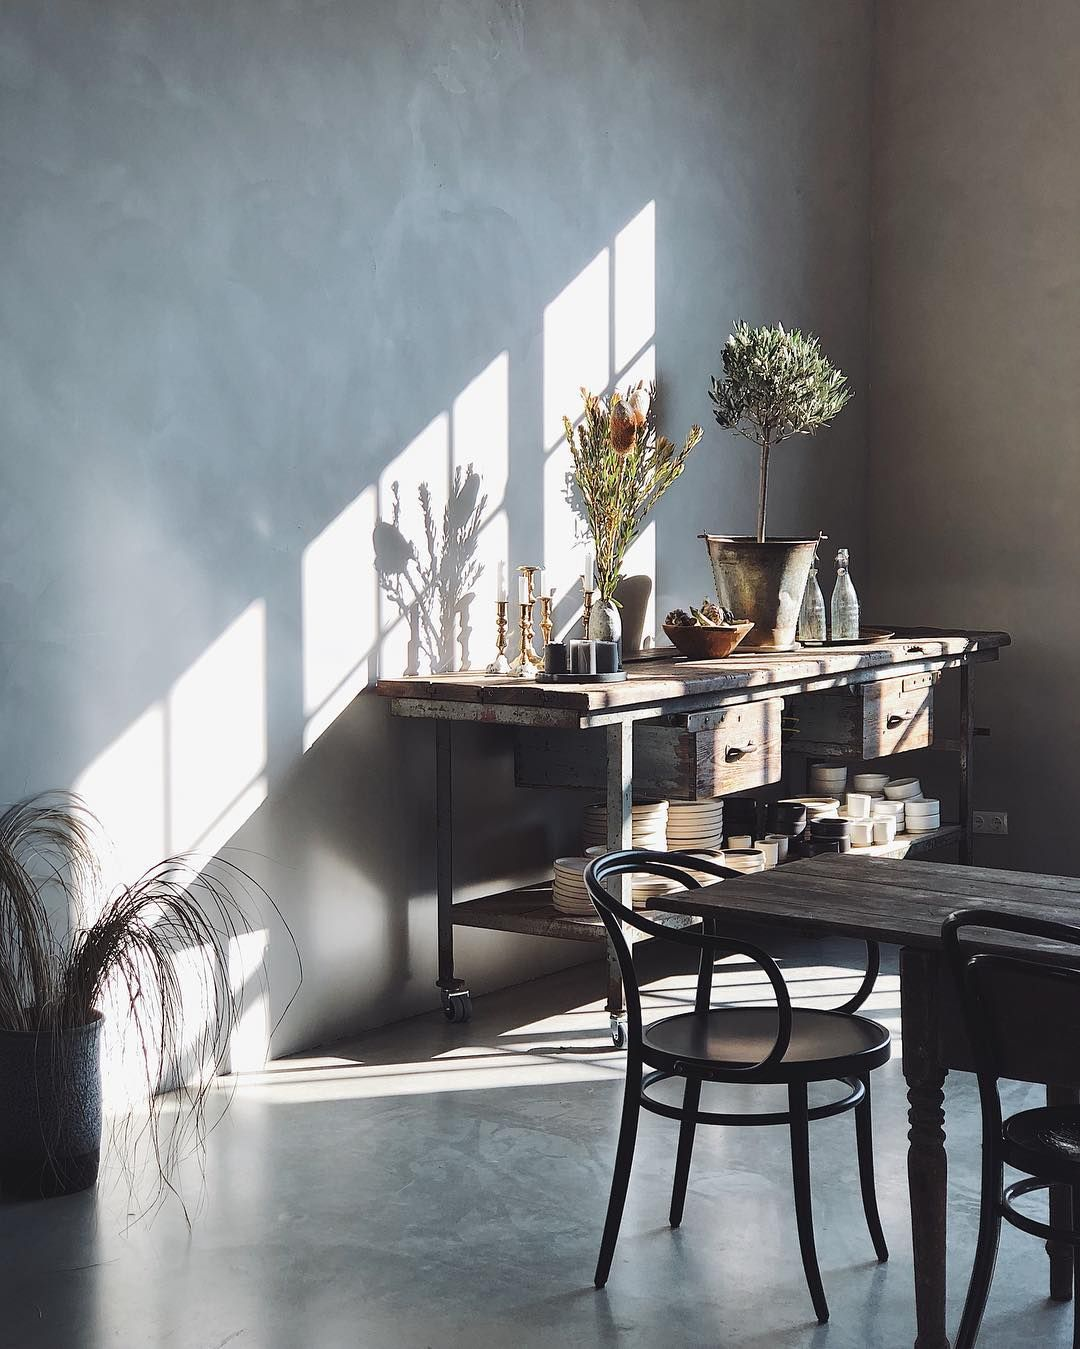 Vintage Interior With Rustic Elements In Our Studio Loft